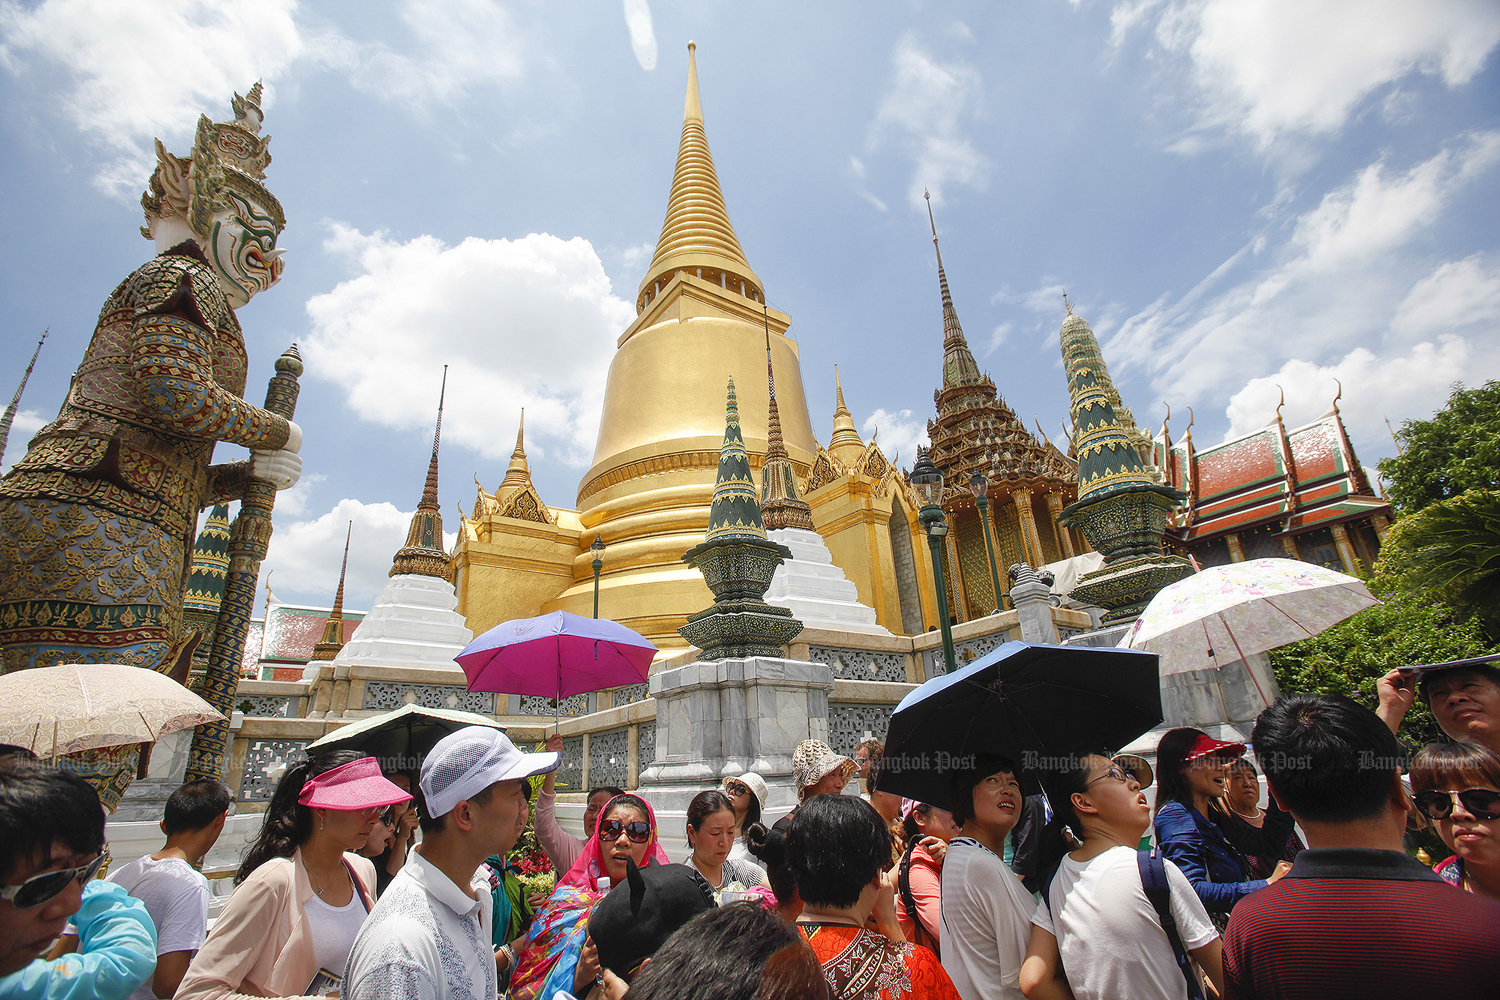 Chinese tourists visit the Temple of the Emerald Buddha and the Grand Palace. (Bangkok Post file photo)